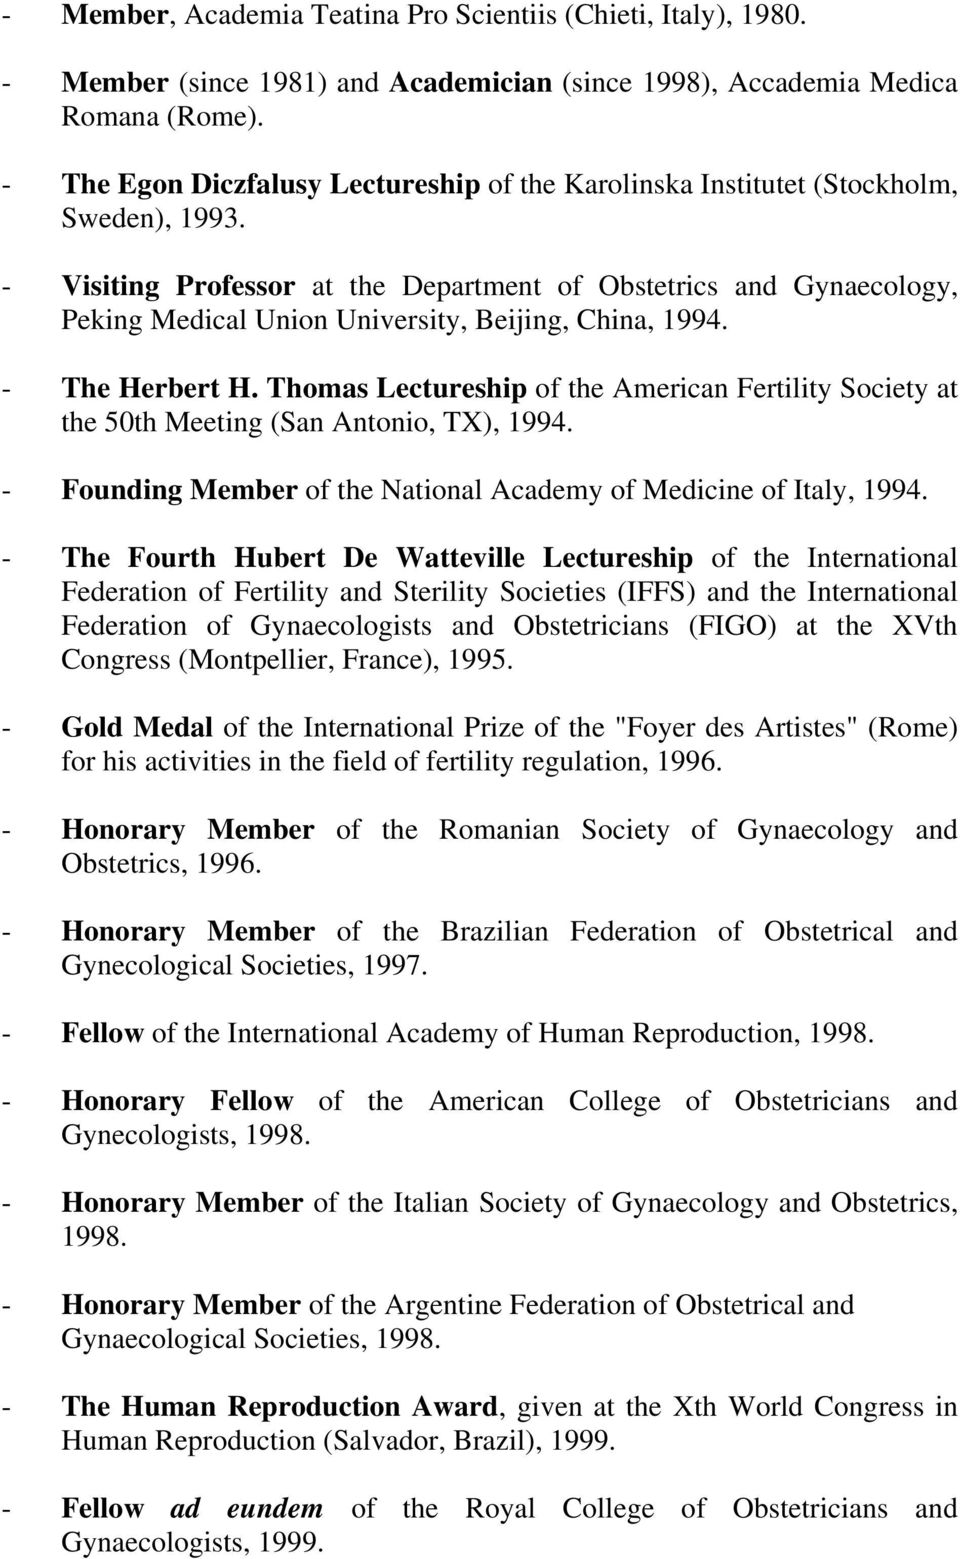 - Visiting Professor at the Department of Obstetrics and Gynaecology, Peking Medical Union University, Beijing, China, 1994. - The Herbert H.